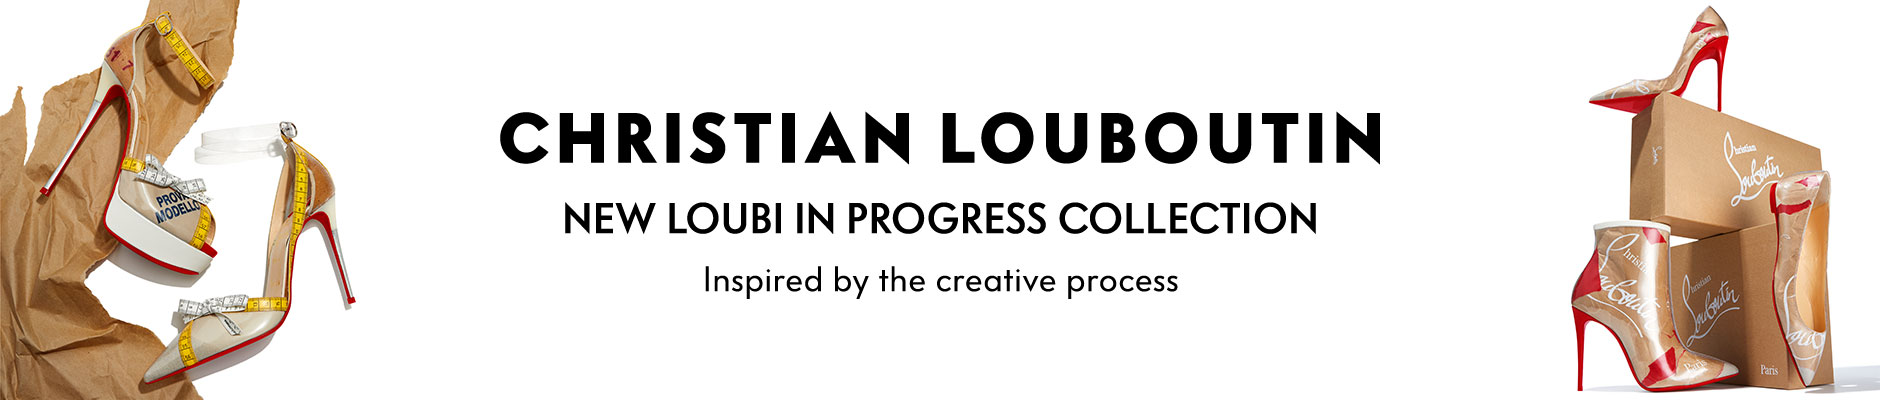 Christian Louboutin: New Kraft Collection - Shoes inspired by the creative process